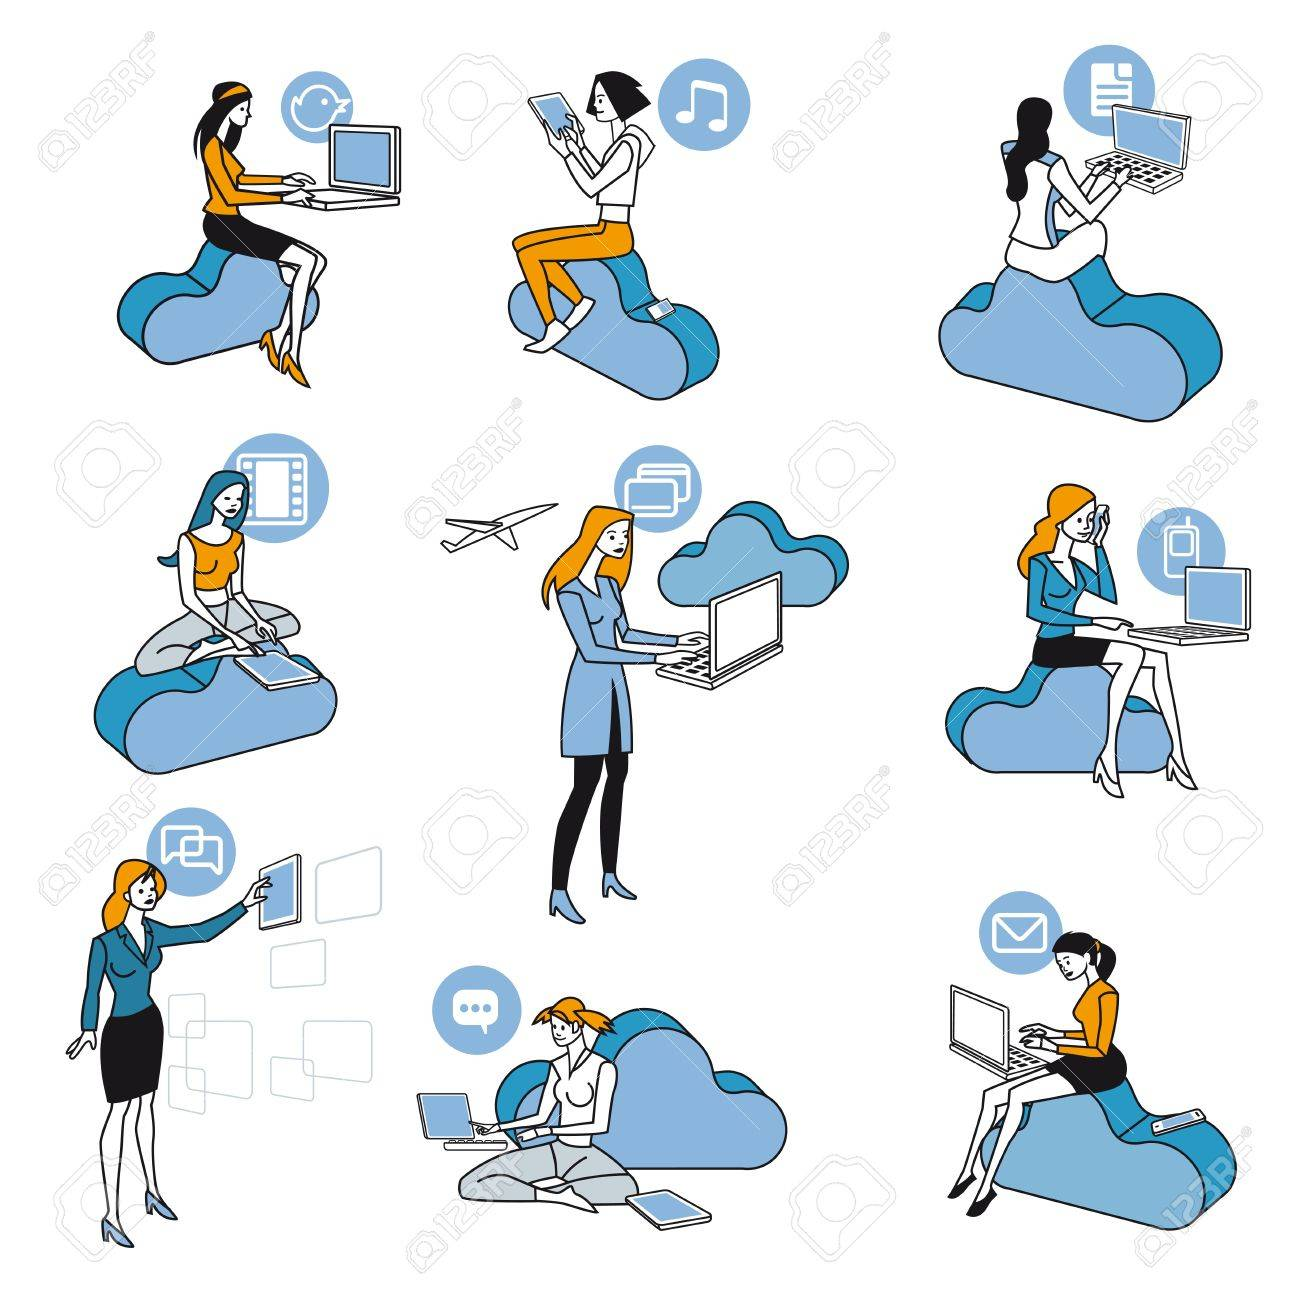 Nine girls and women access to Internet data in the cloud while they are sitting on blue clouds. Attitudes of professional work and leisure in social networks. schematic illustrations nearly icons Stock Vector - 14255658